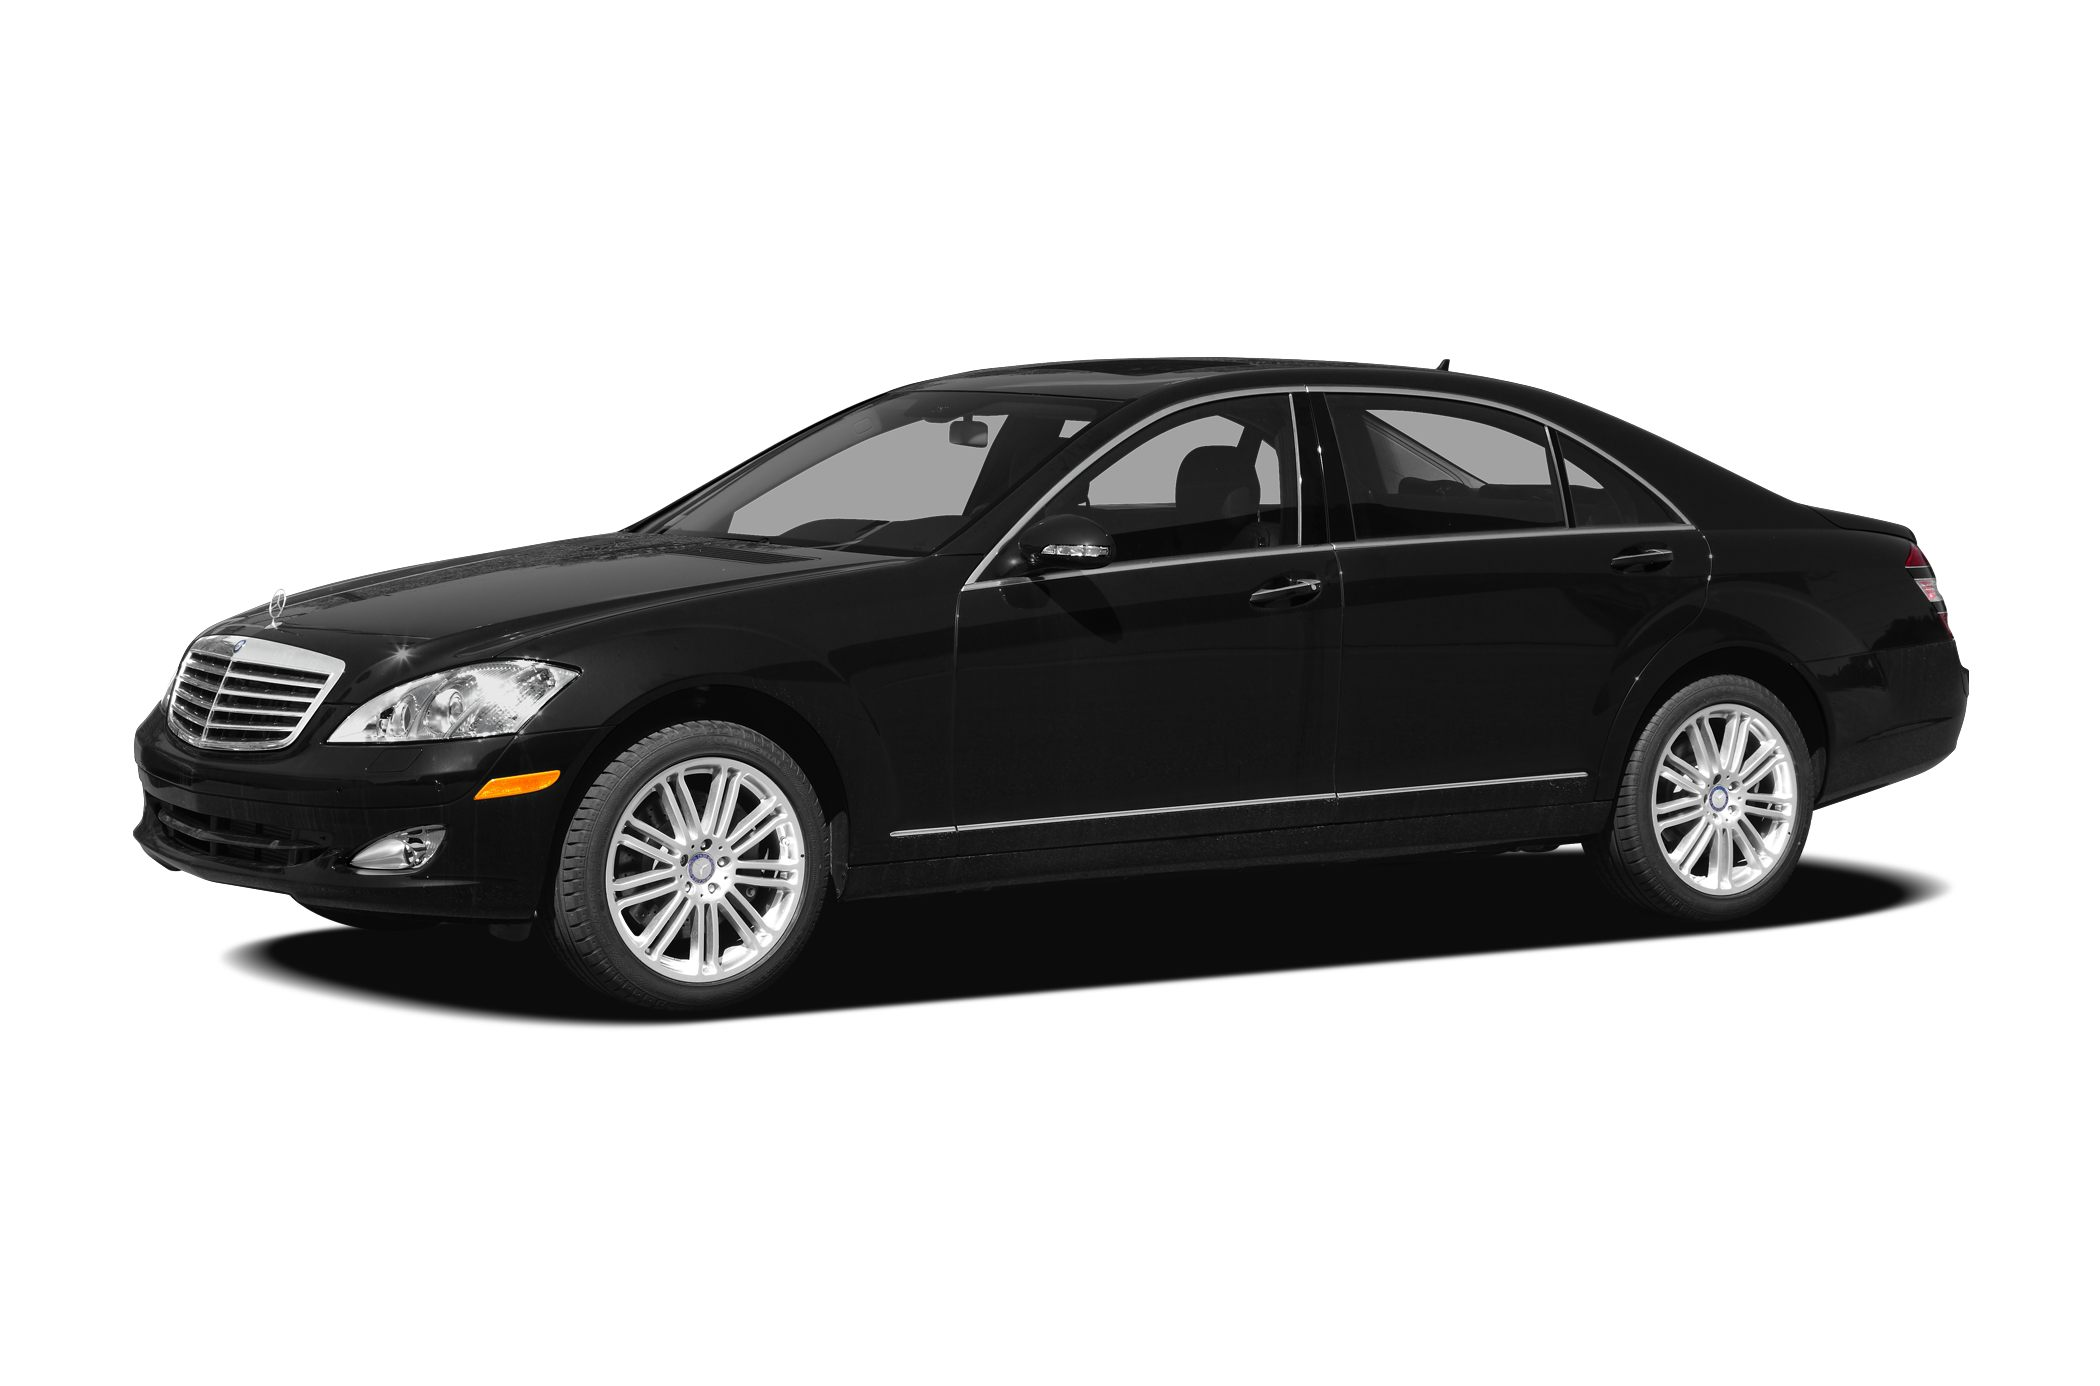 2008 Mercedes-Benz S-Class S550 4MATIC Sedan for sale in Louisville for $31,991 with 71,025 miles